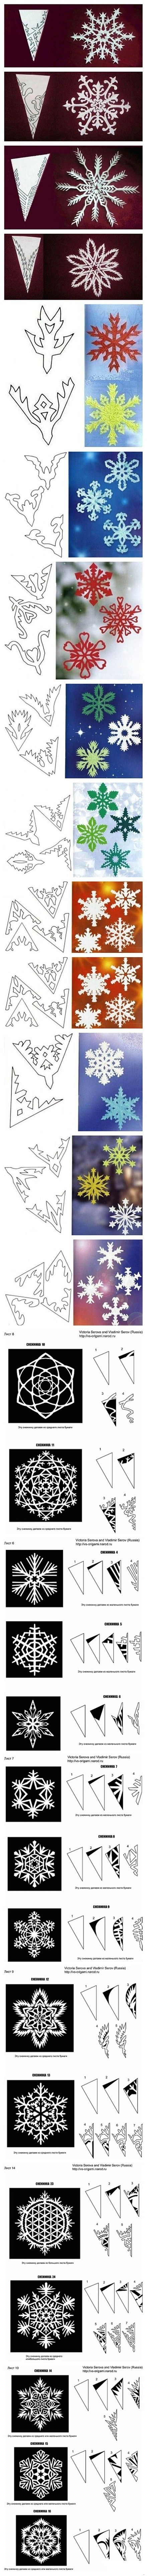 all the snowflake mysteries revealed!